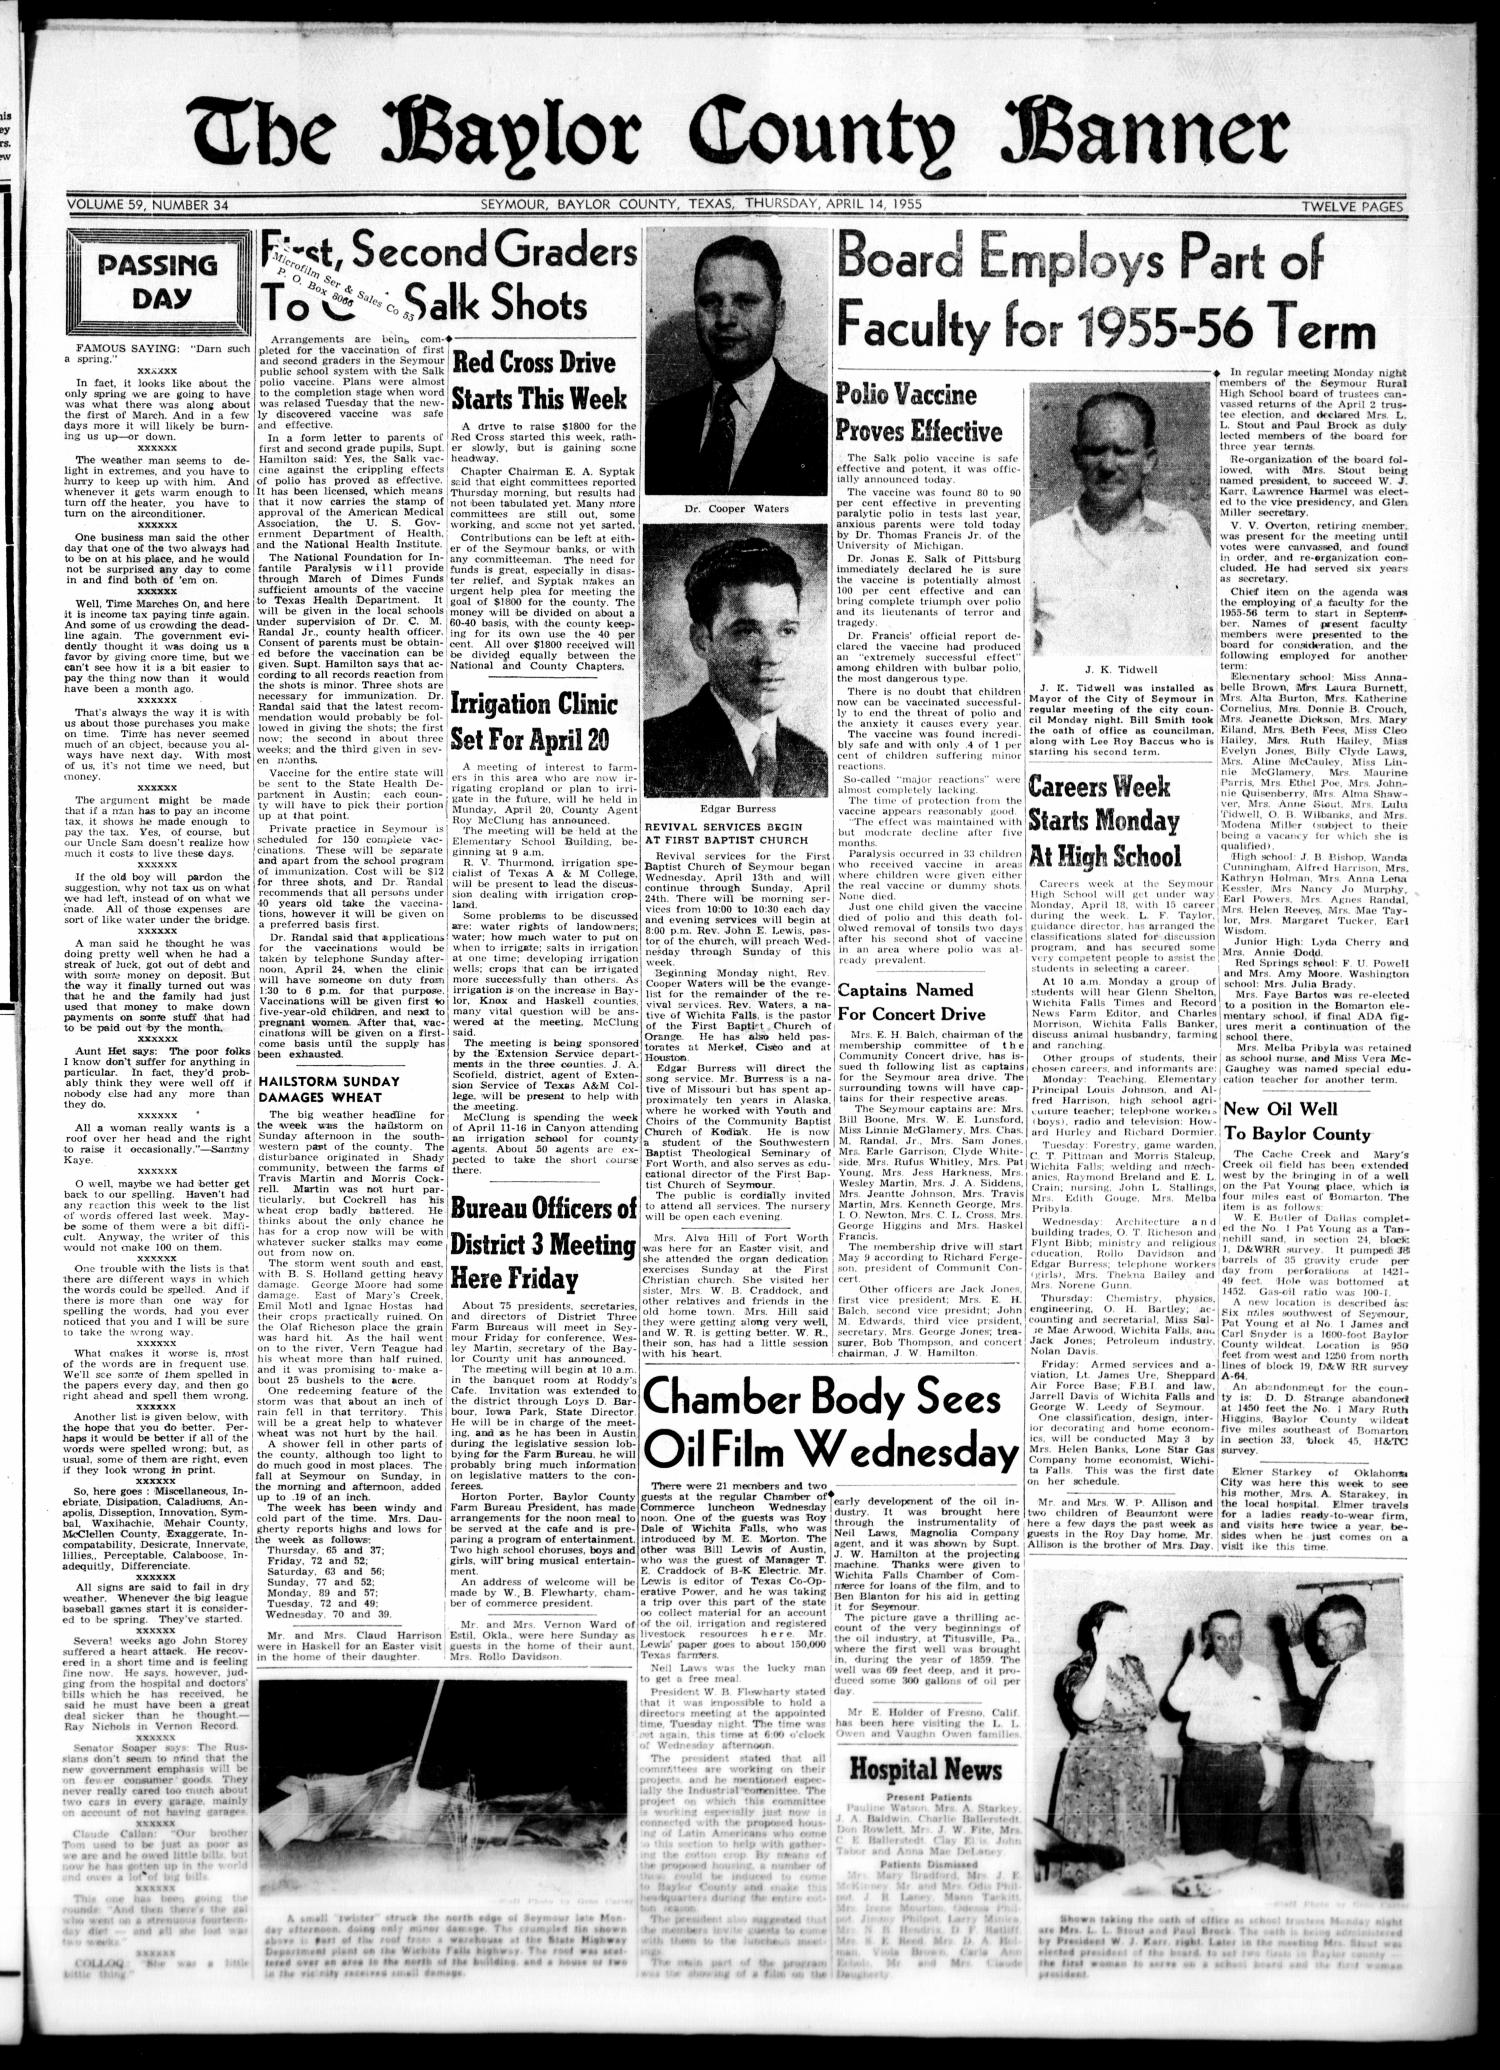 The Baylor County Banner (Seymour, Tex.), Vol. 59, No. 34, Ed. 1 Thursday, April 14, 1955                                                                                                      [Sequence #]: 1 of 12